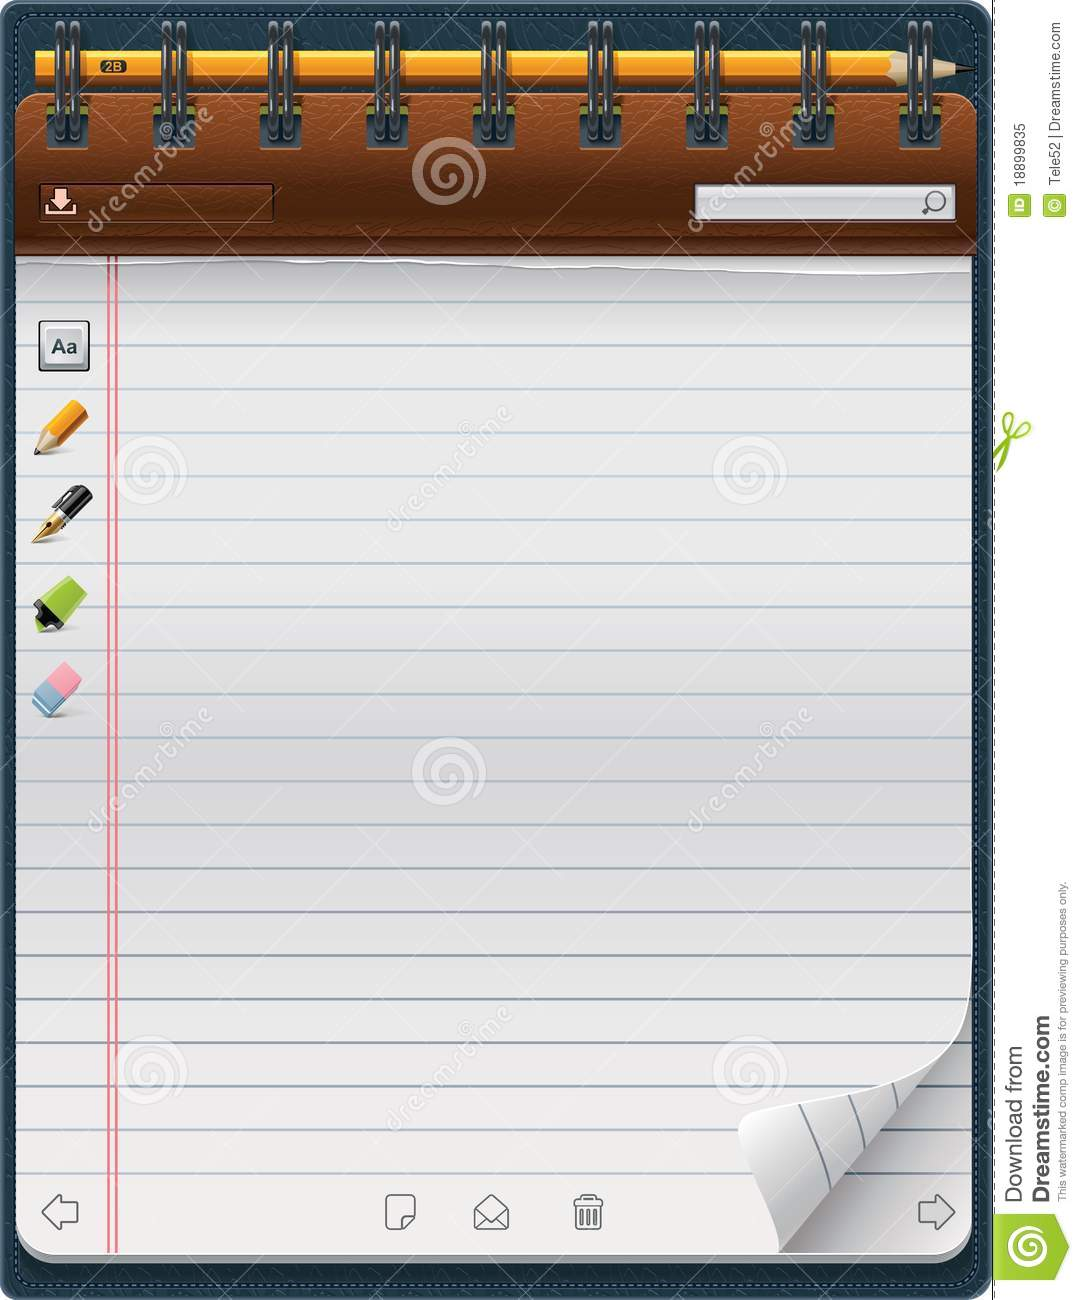 microsoft word notepad template – Microsoft Word Notebook Paper Template